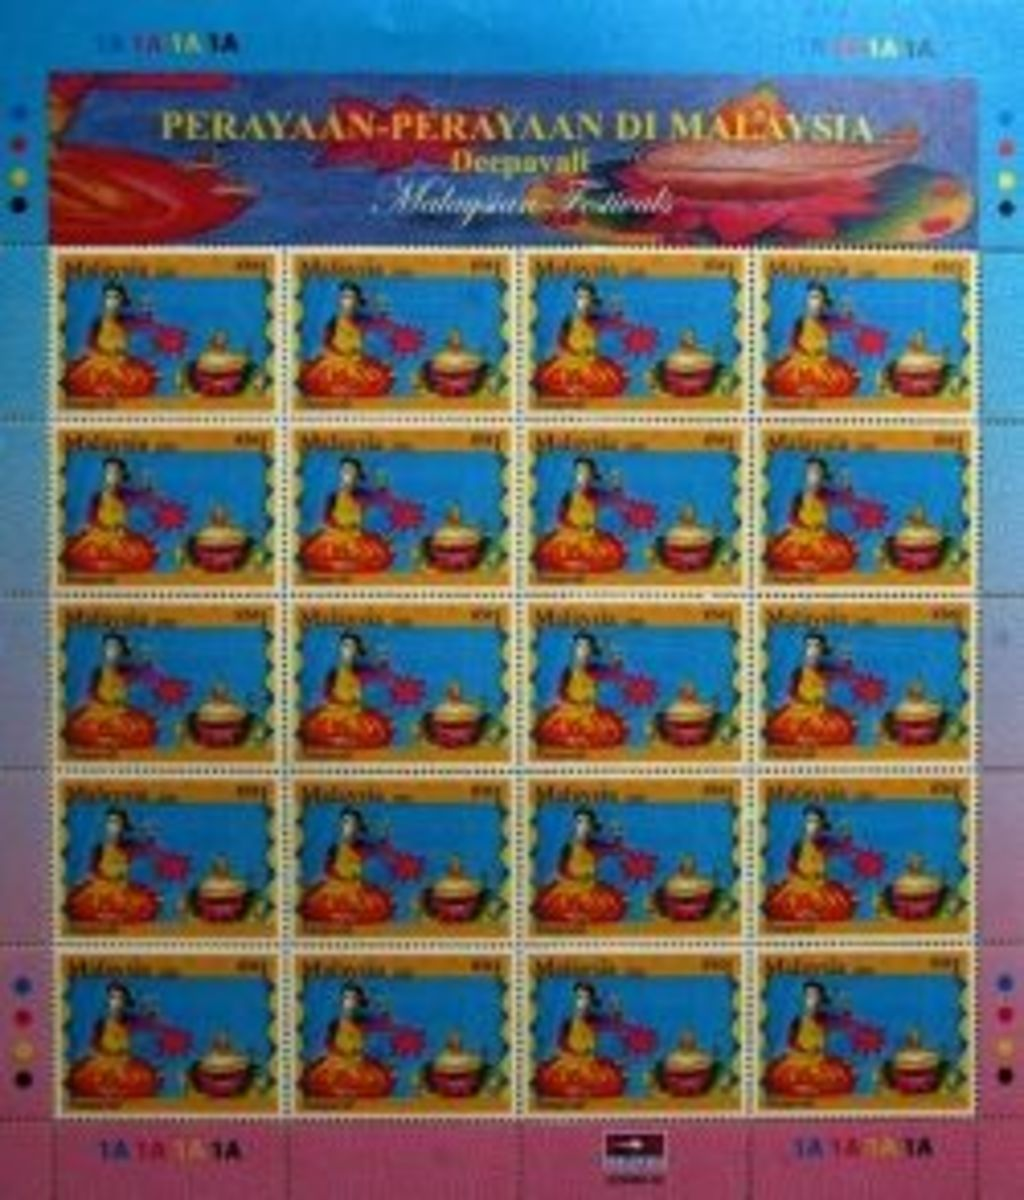 Malaysian festival stamp